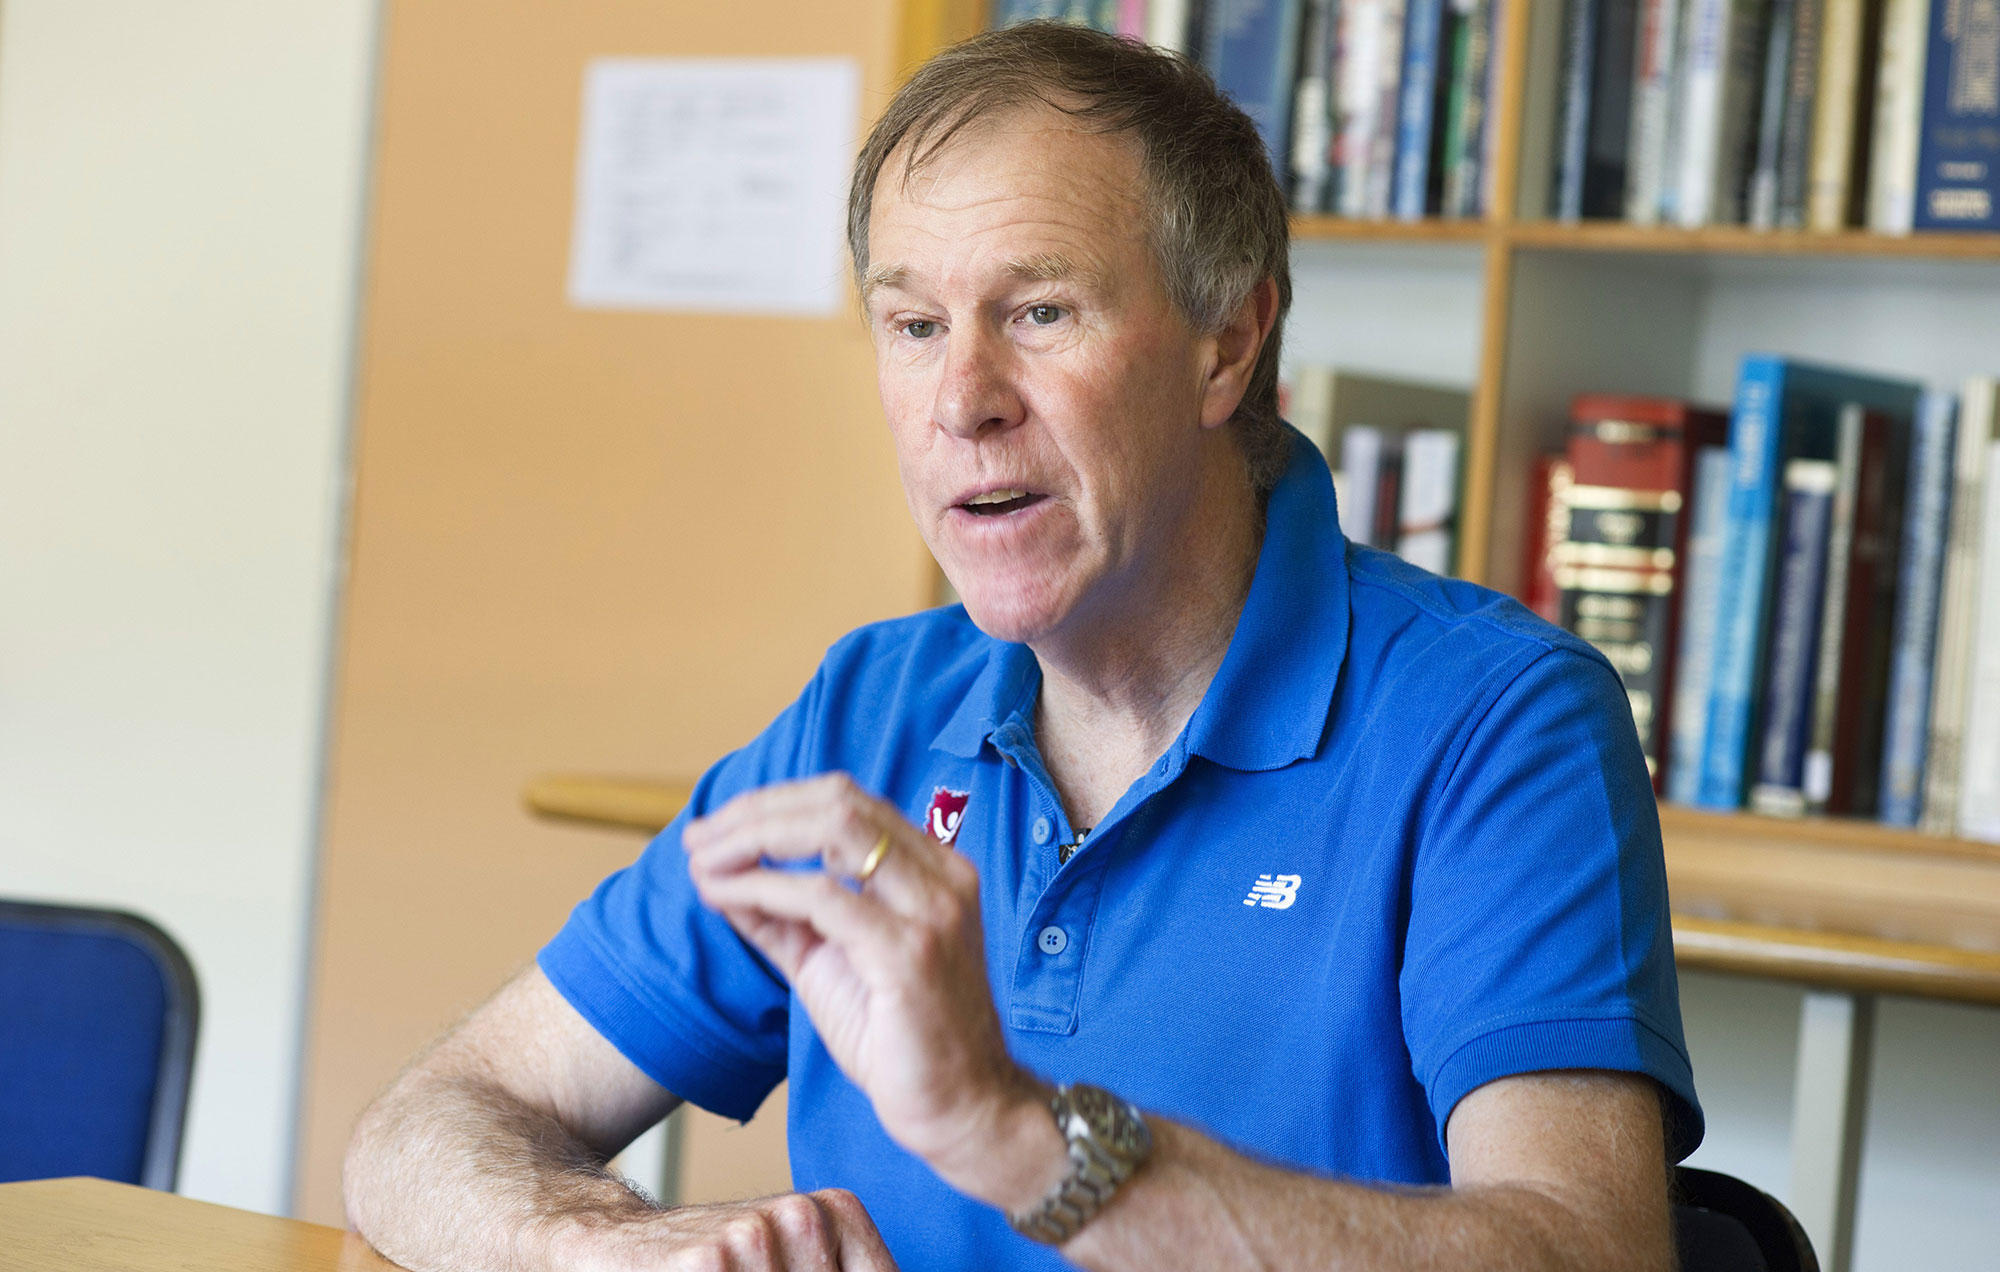 Tim Noakes as evidenced in this picture, may be thin but has a high percentage body fat.